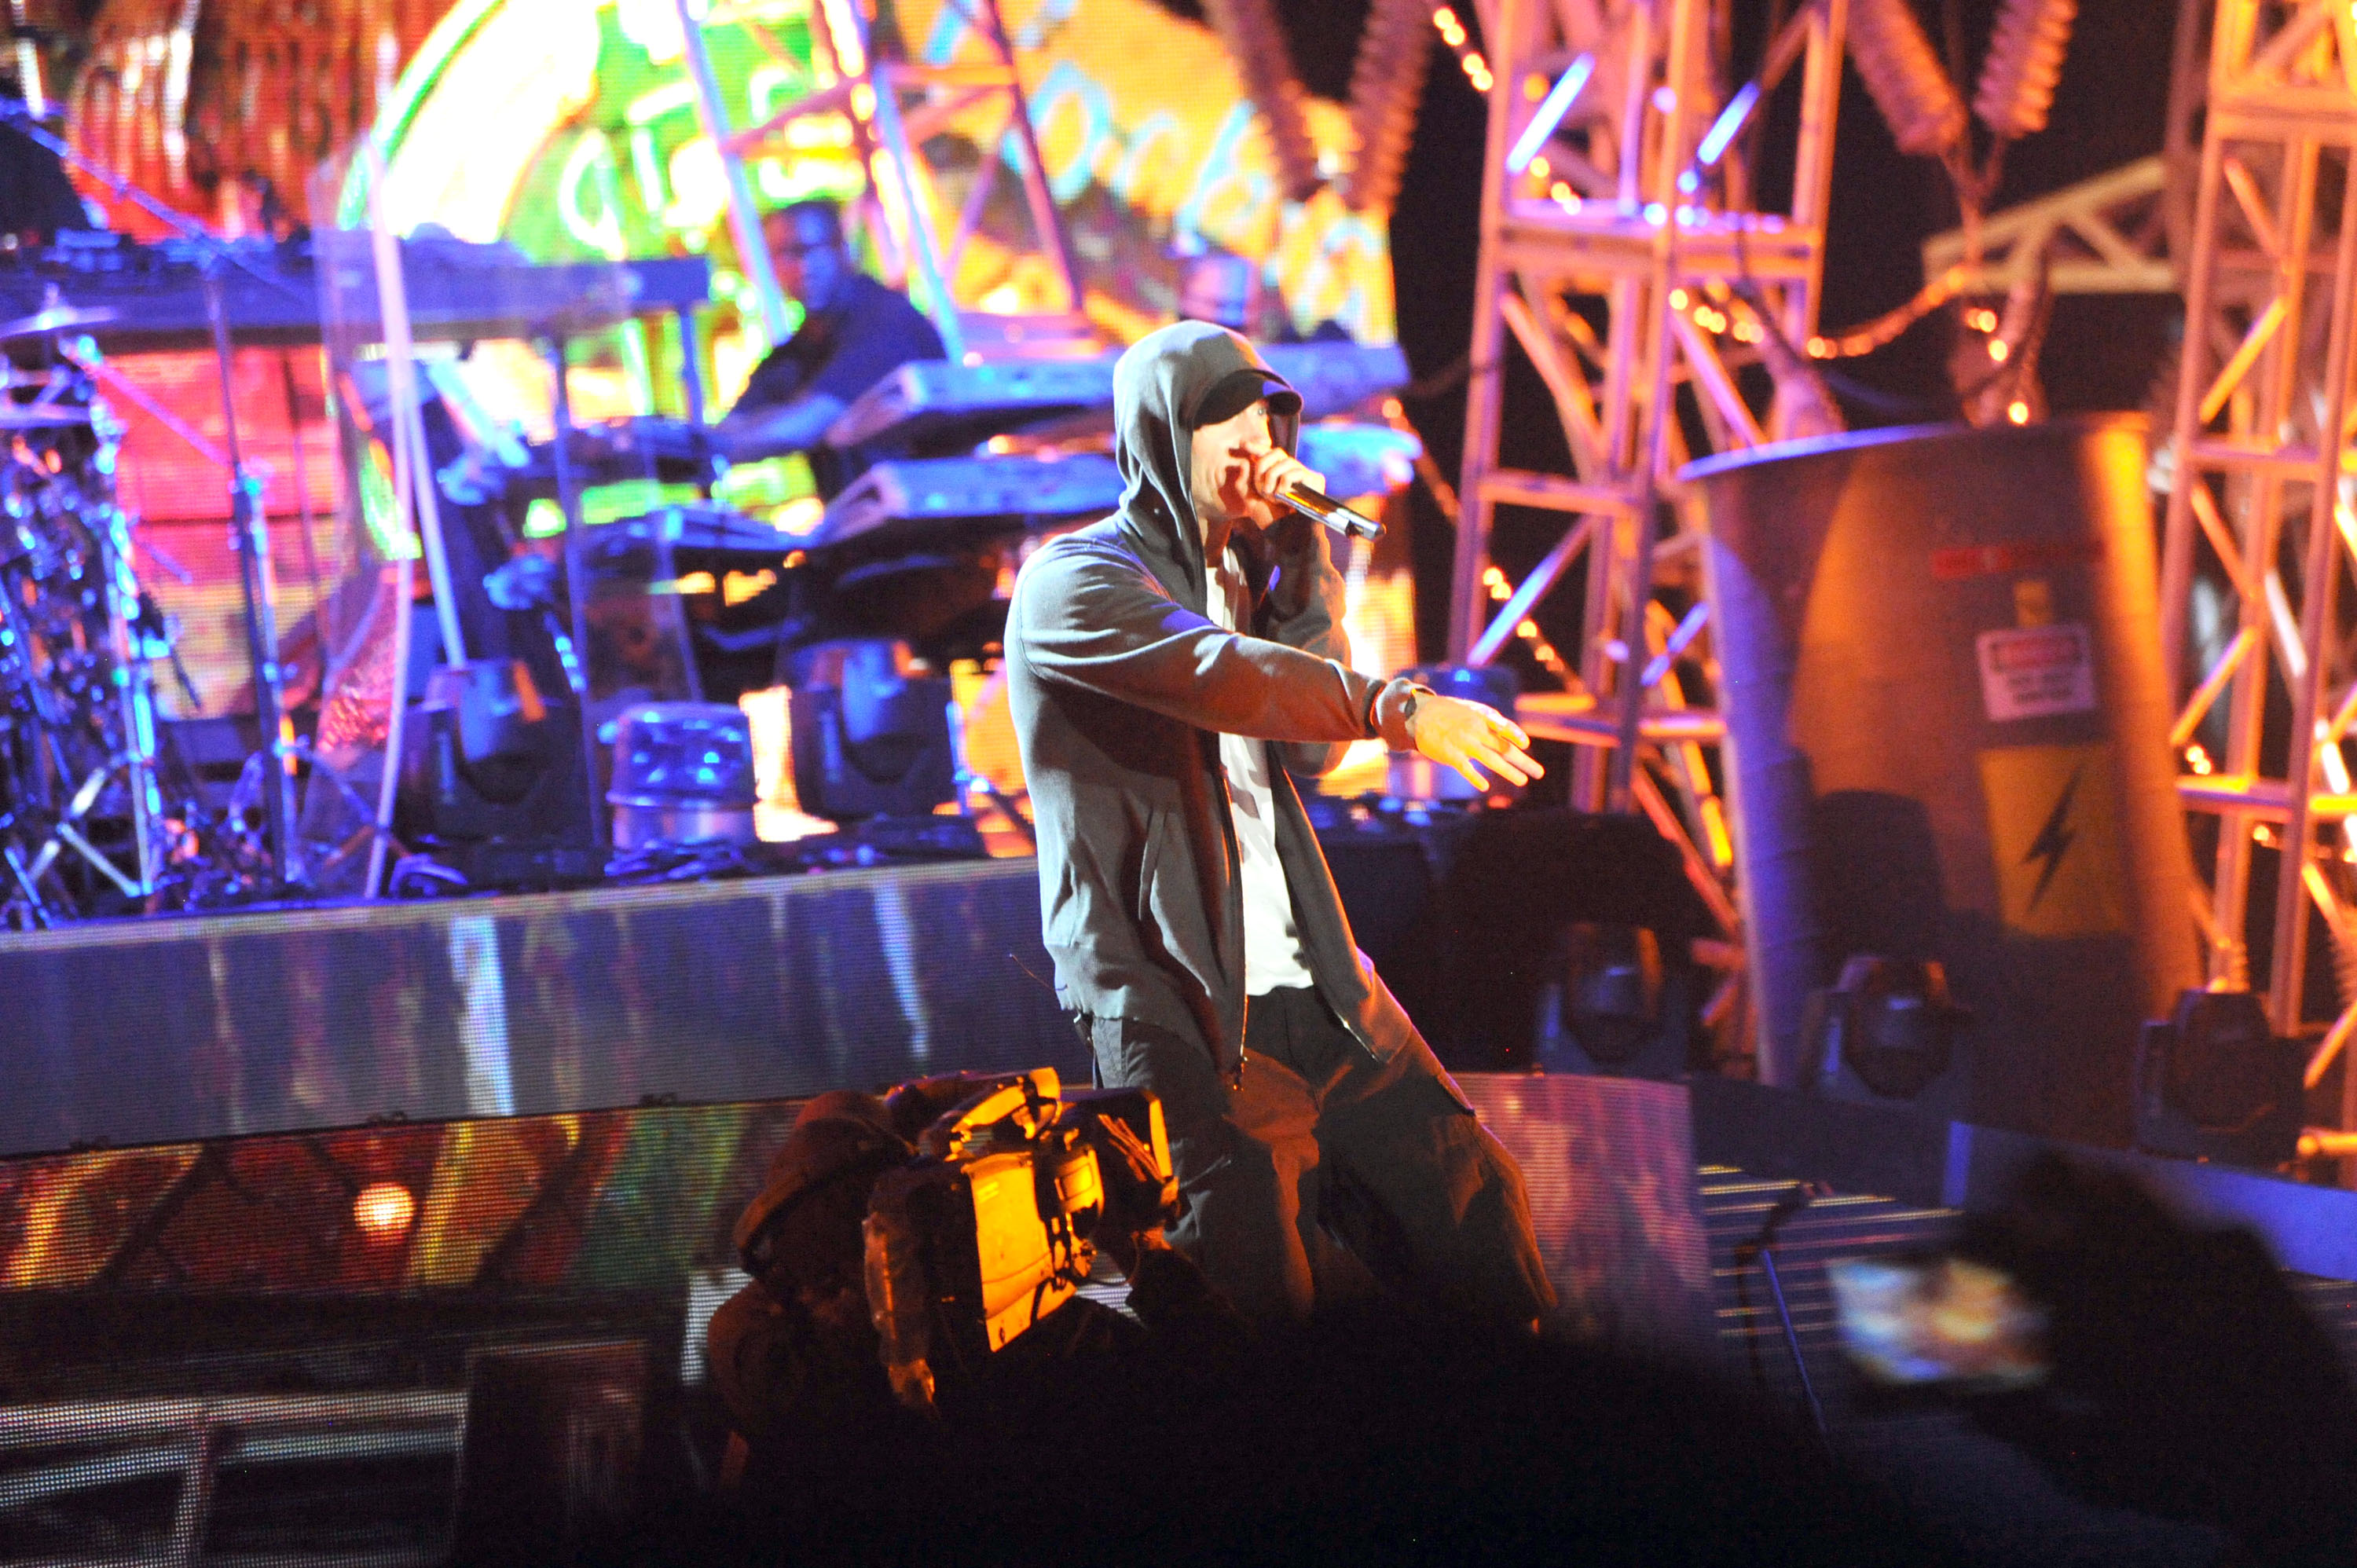 INDIO, CA - APRIL 22: Eminem performs at day 3 of the 2012 Coachella Valley Music & Arts Festival at The Empire Polo Club